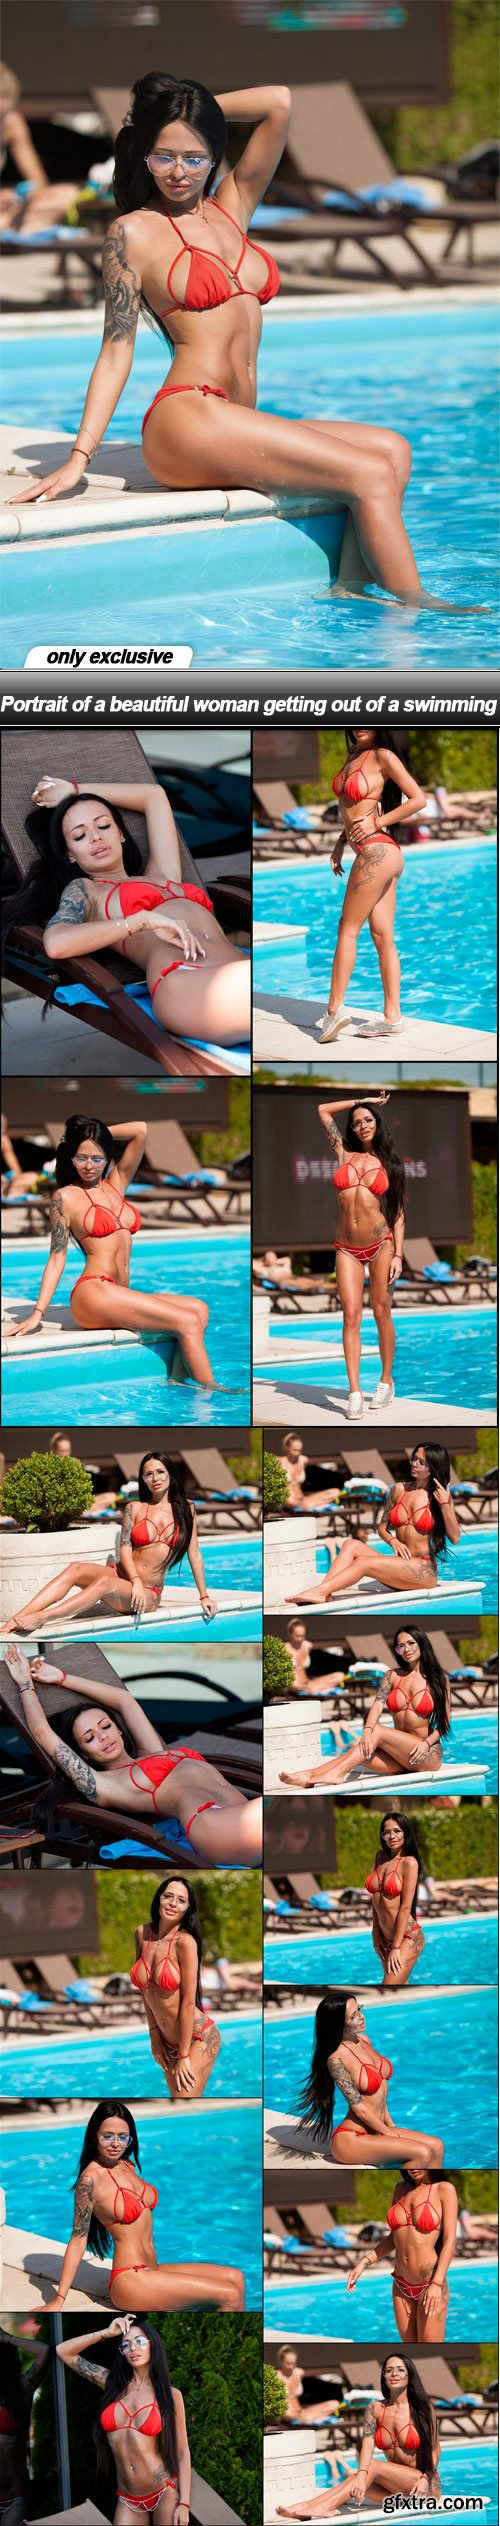 Portrait of a beautiful woman getting out of a swimming - 15 UHQ JPEG